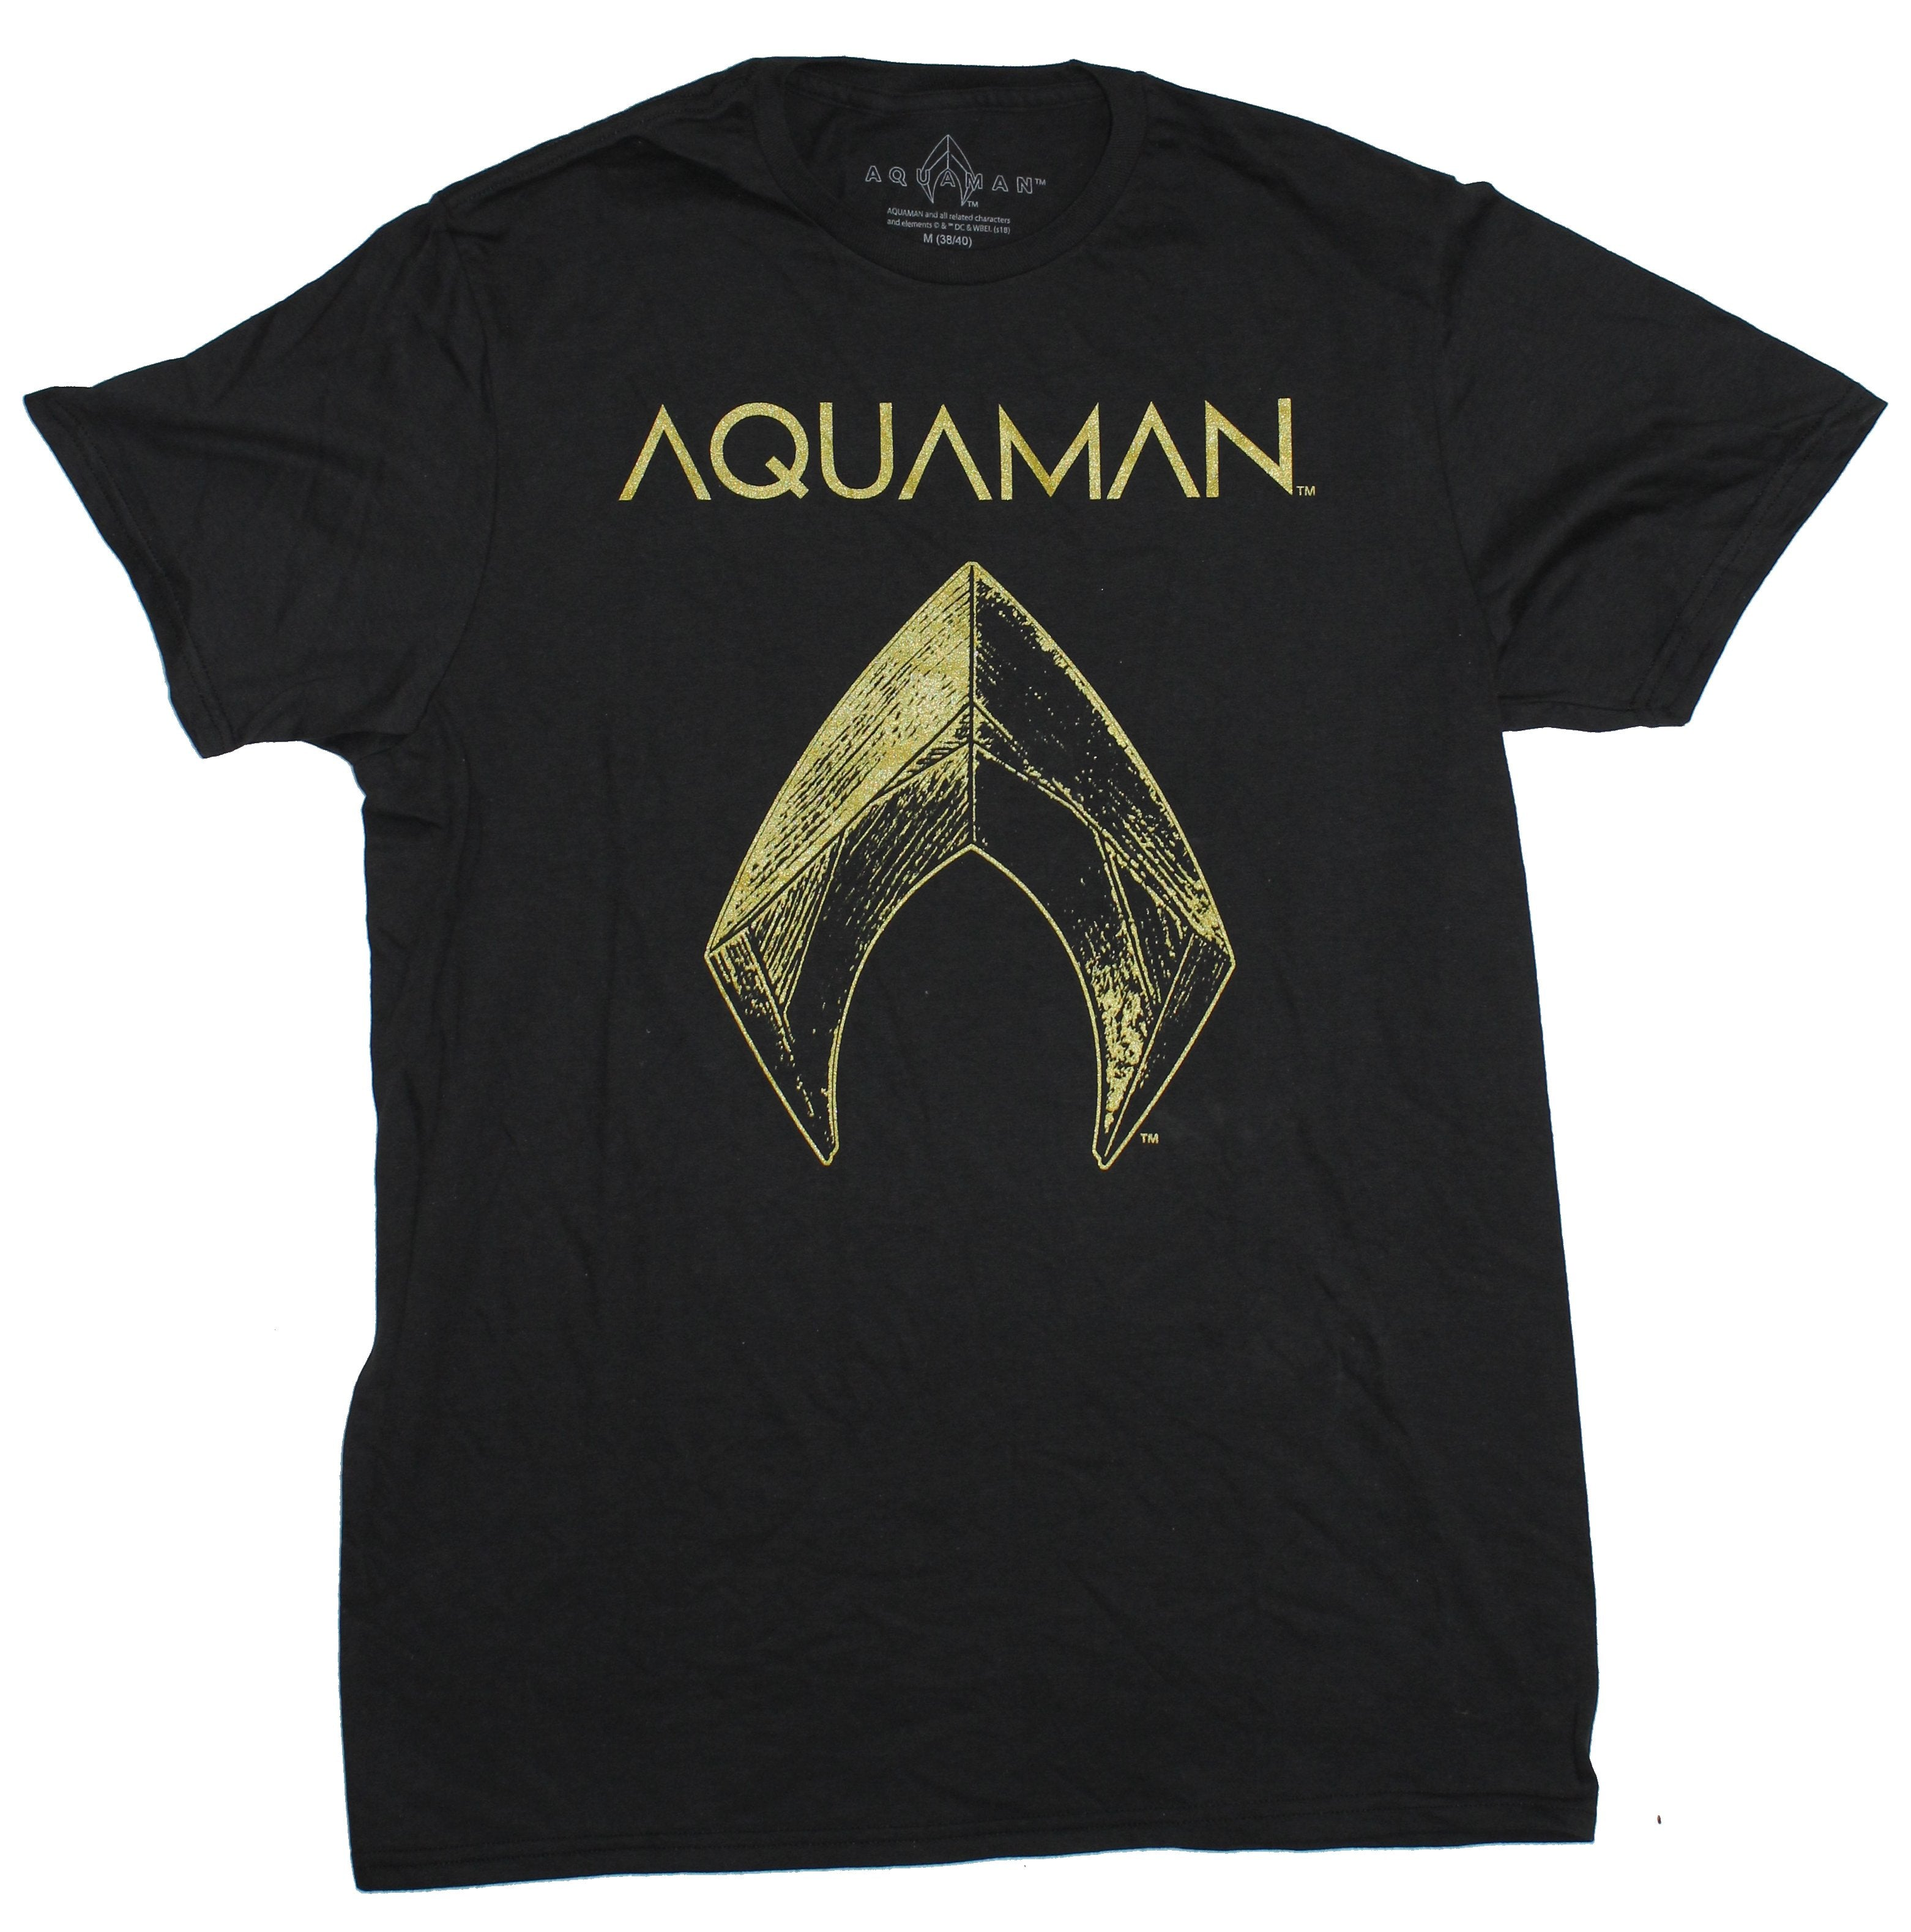 Aquaman DC Comics Mens T-Shirt - Golden Movie Logo Under Name